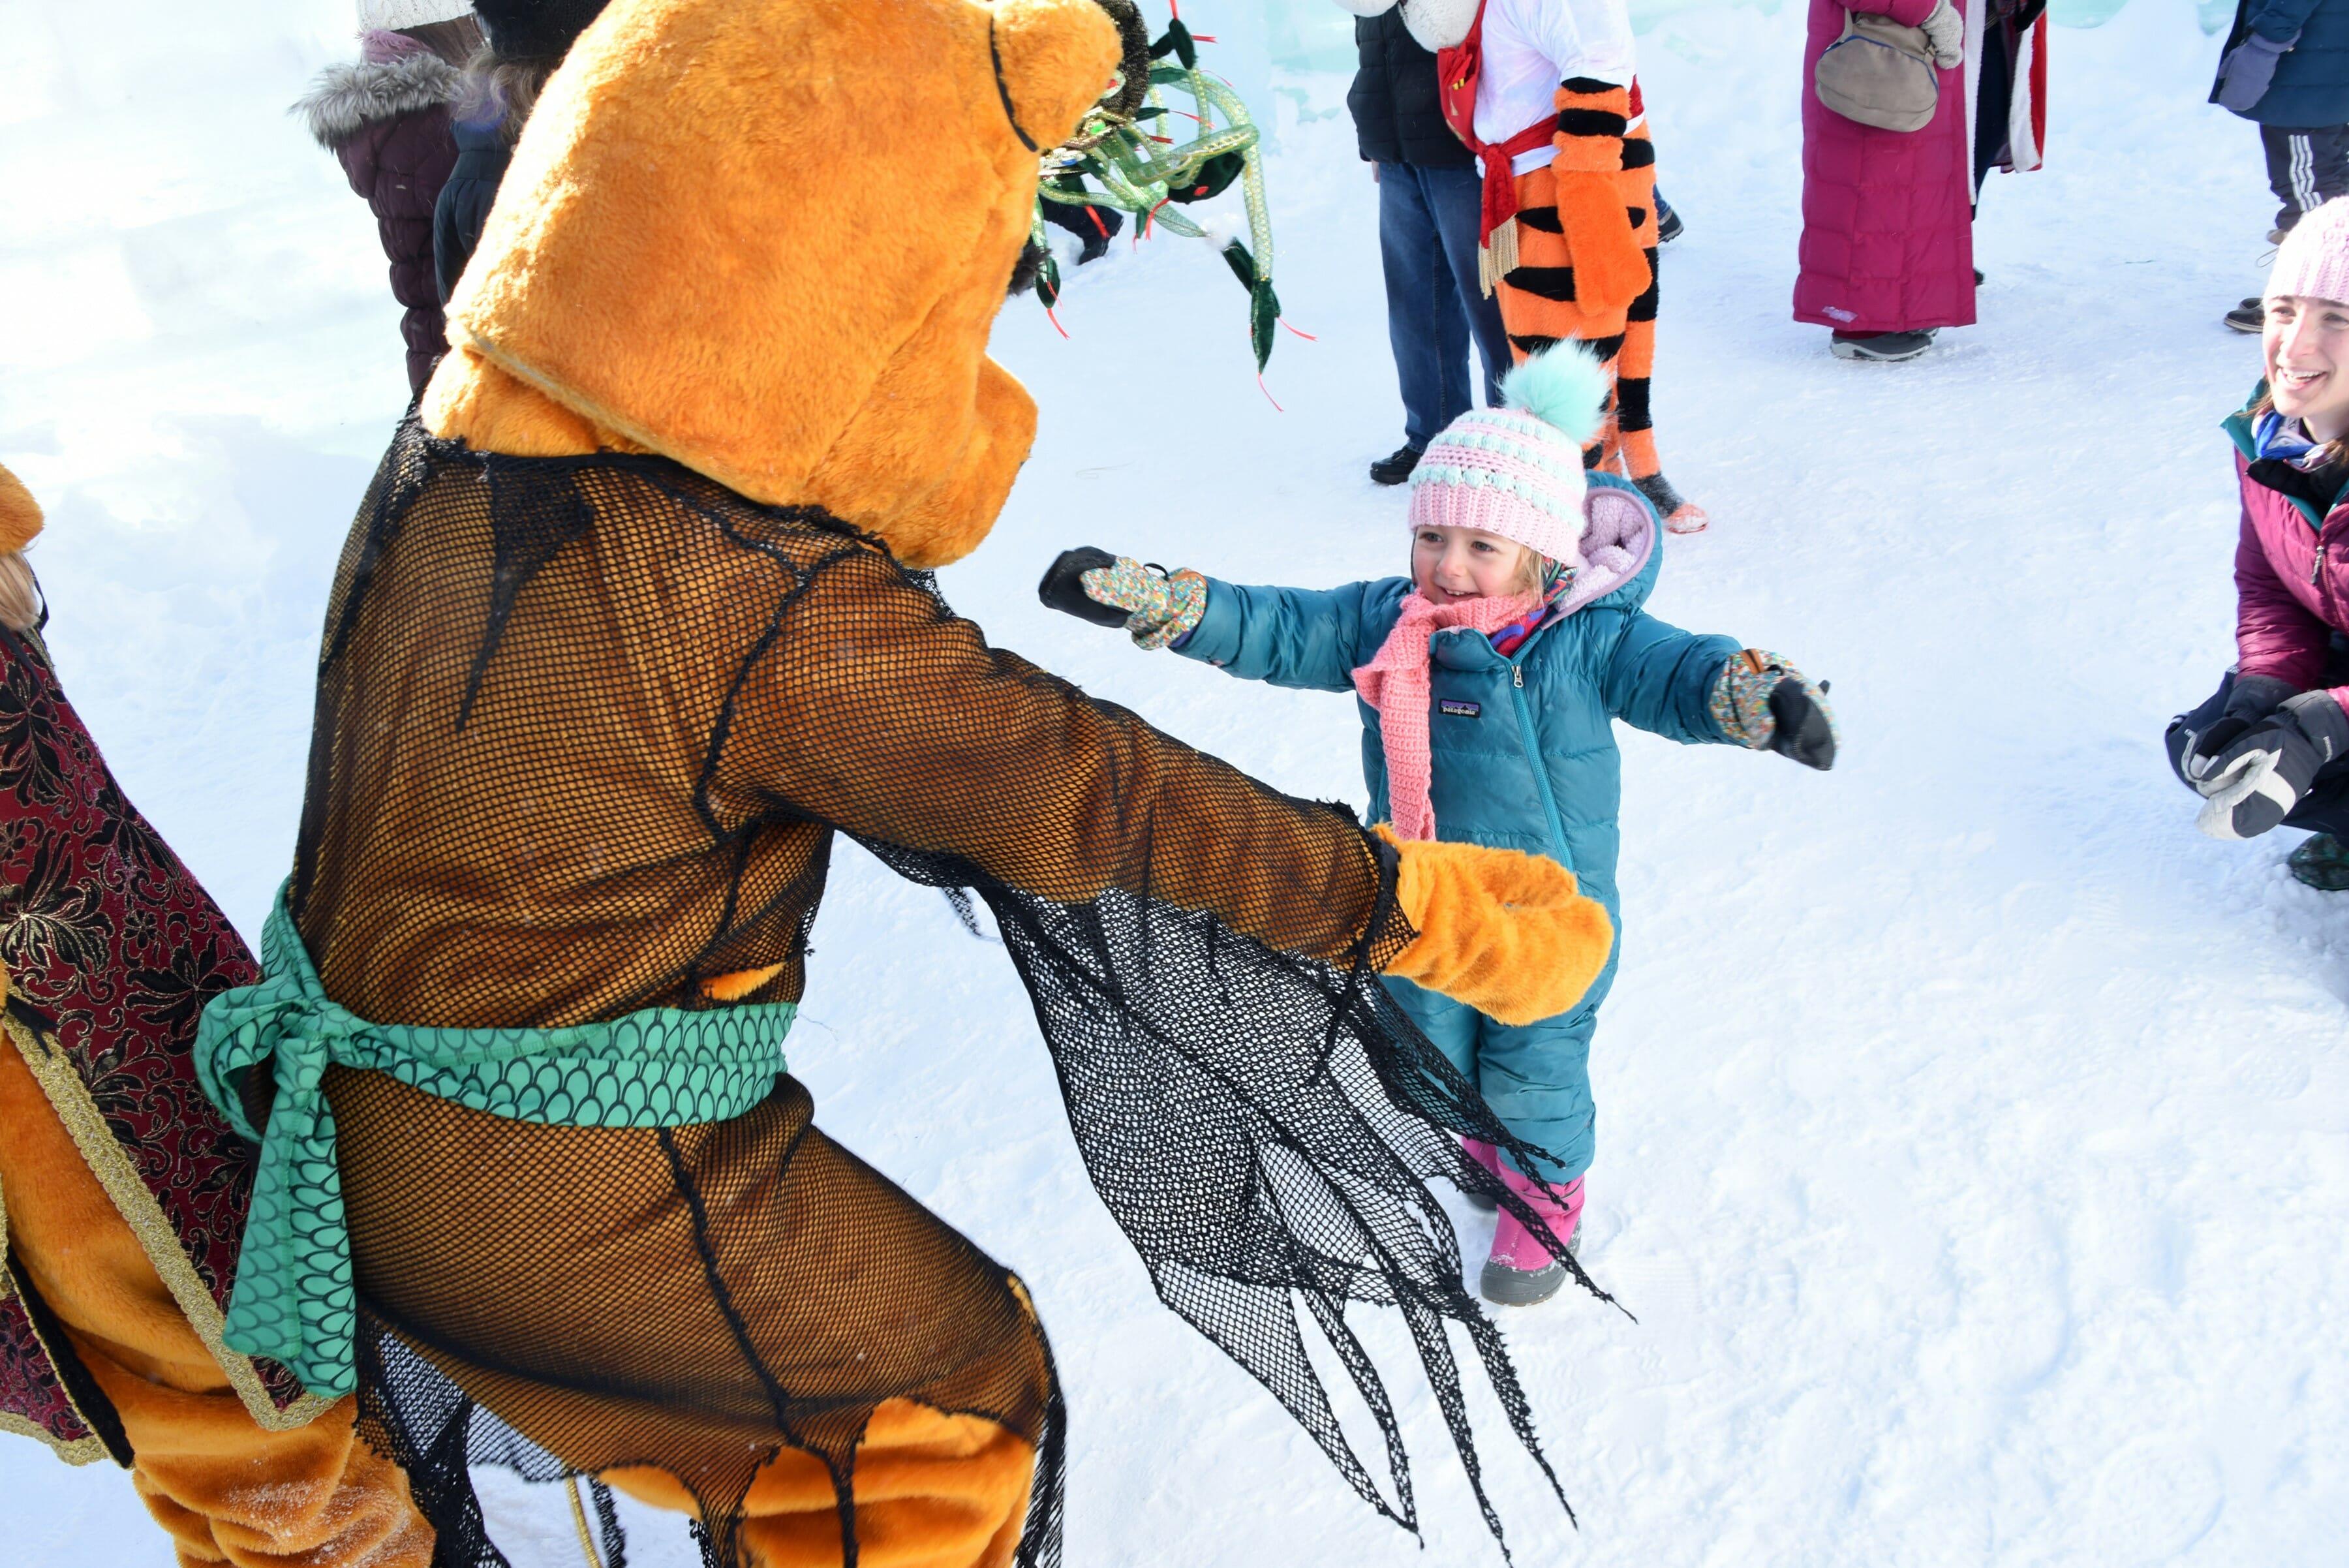 Child greeted by a costumed character.